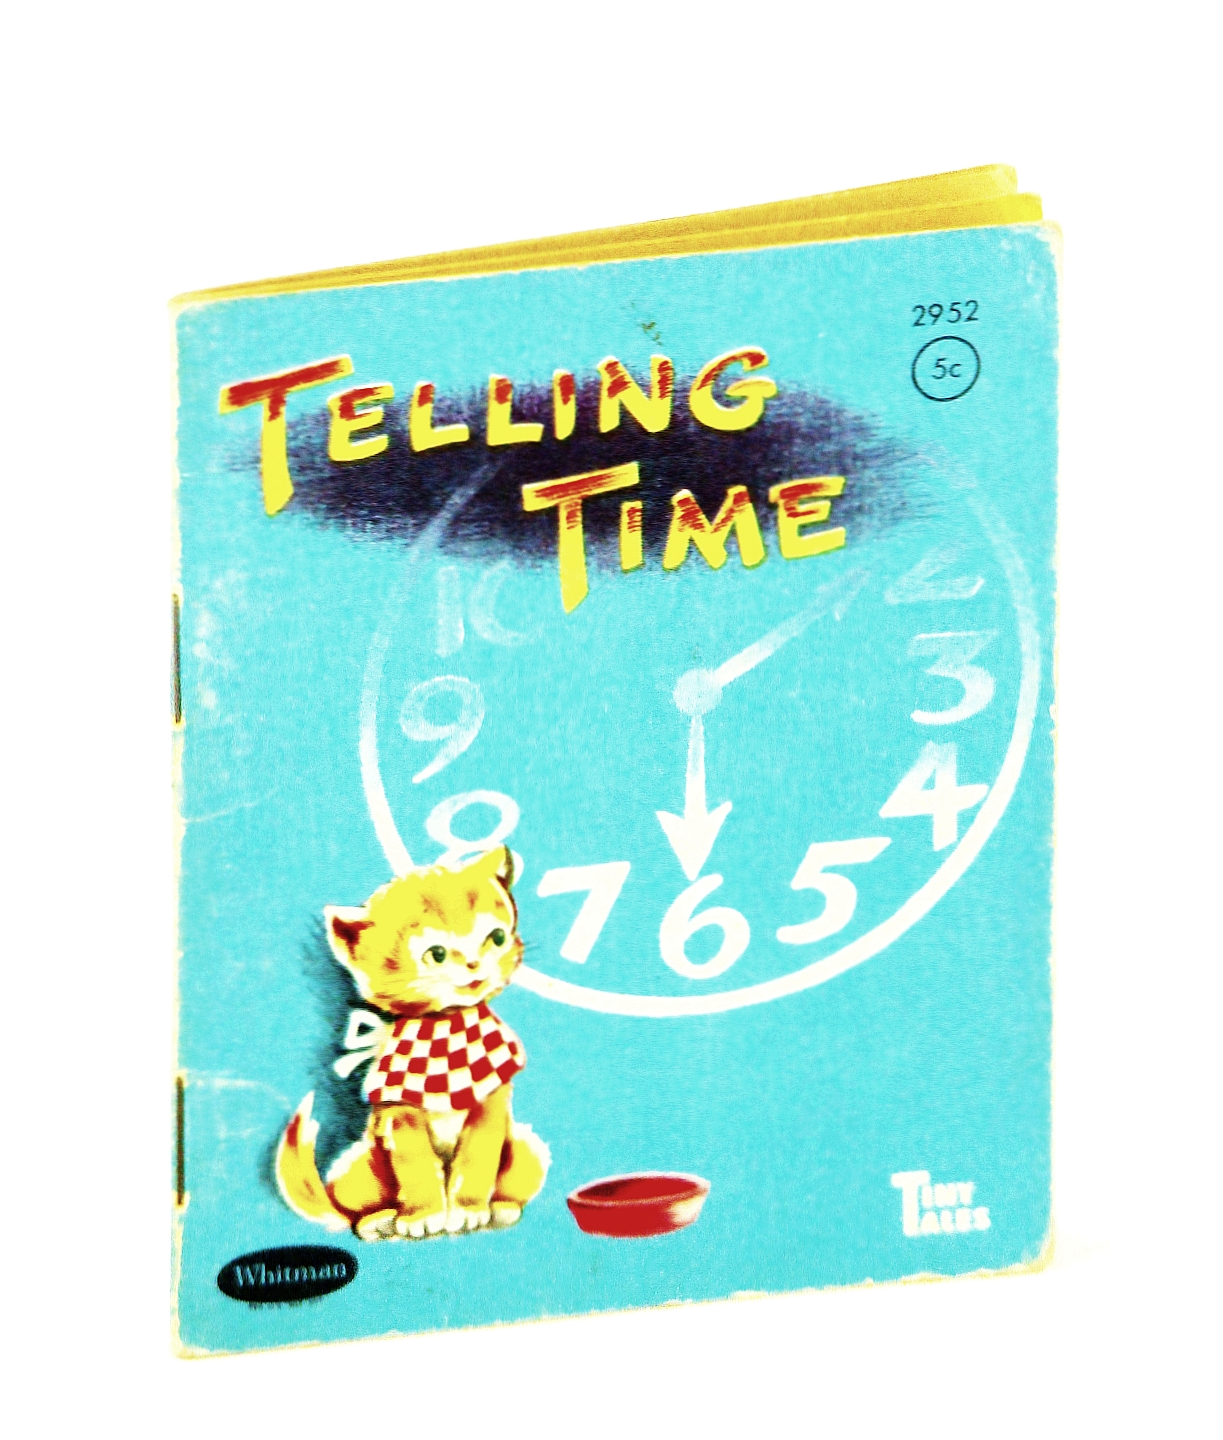 Image for Telling time (Whitman tiny tales)